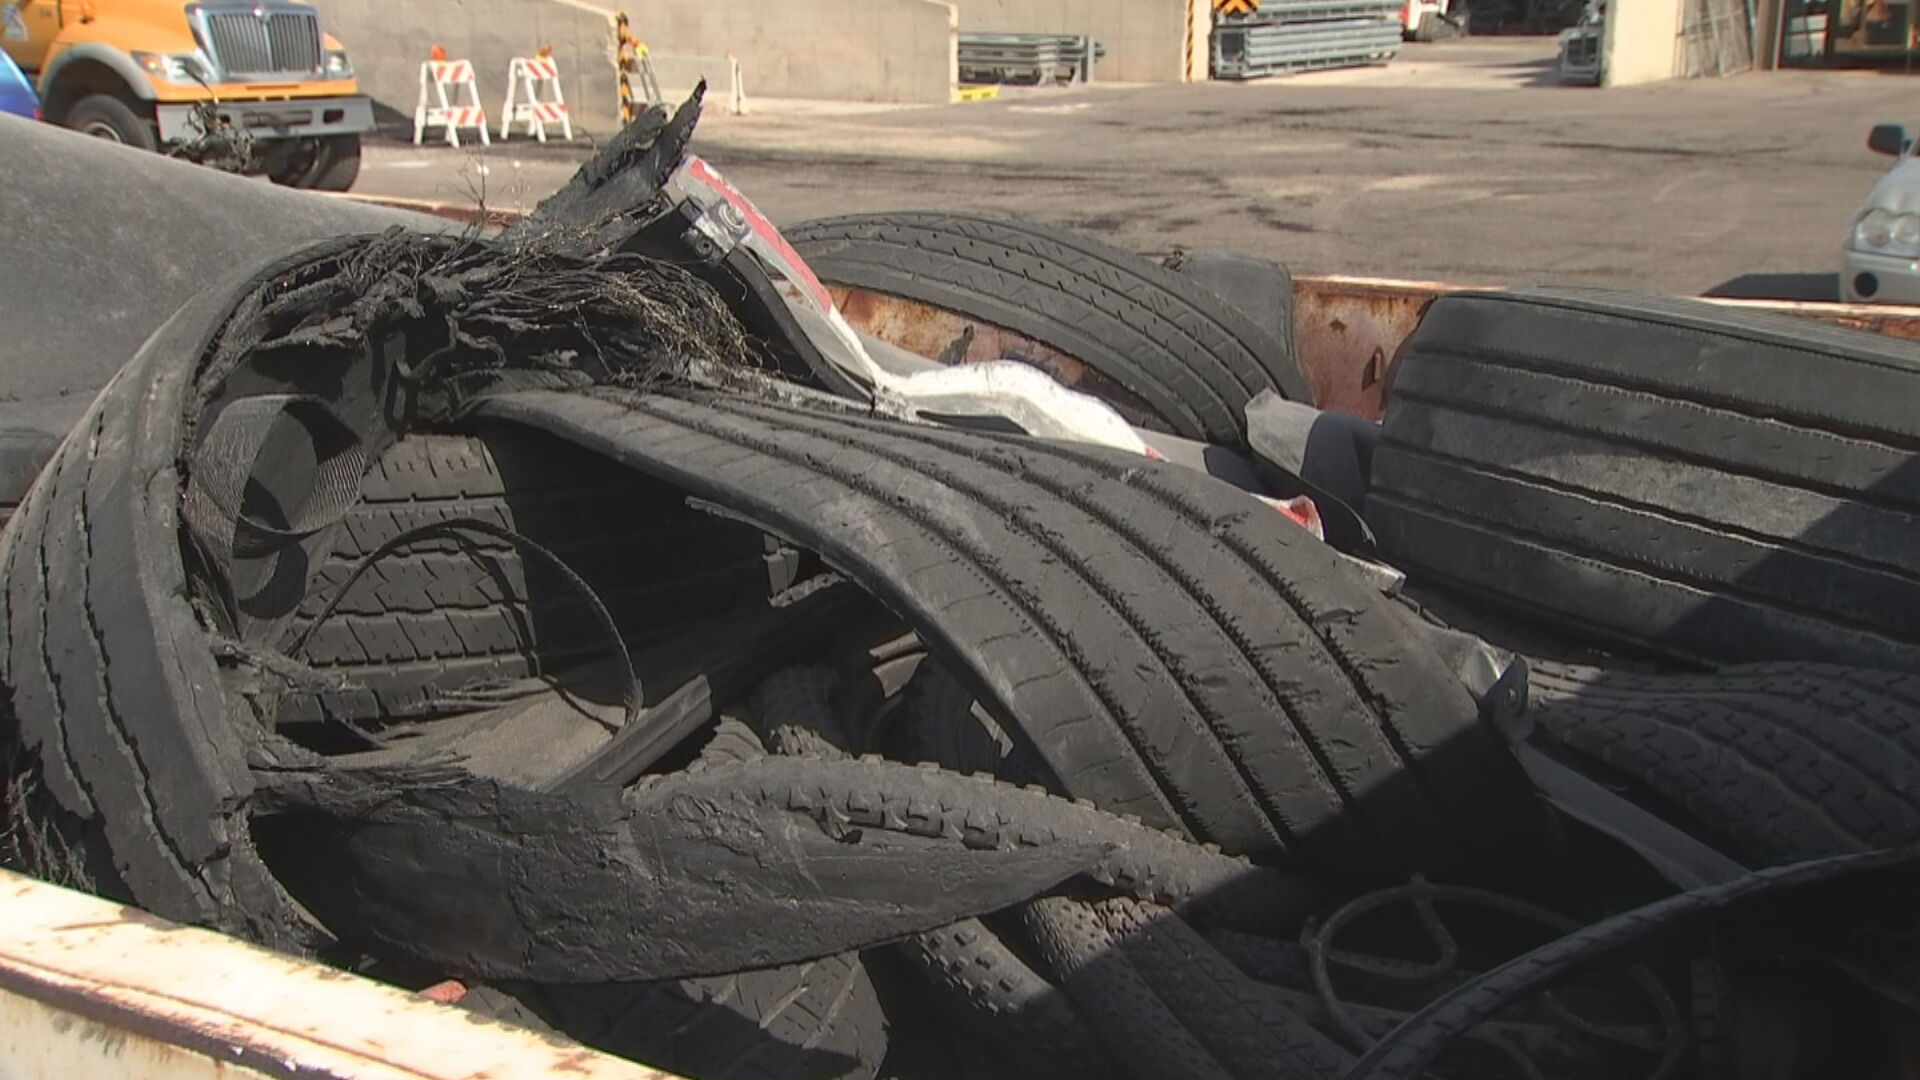 Hundreds of drivers in Arizona cited for unsecured loads